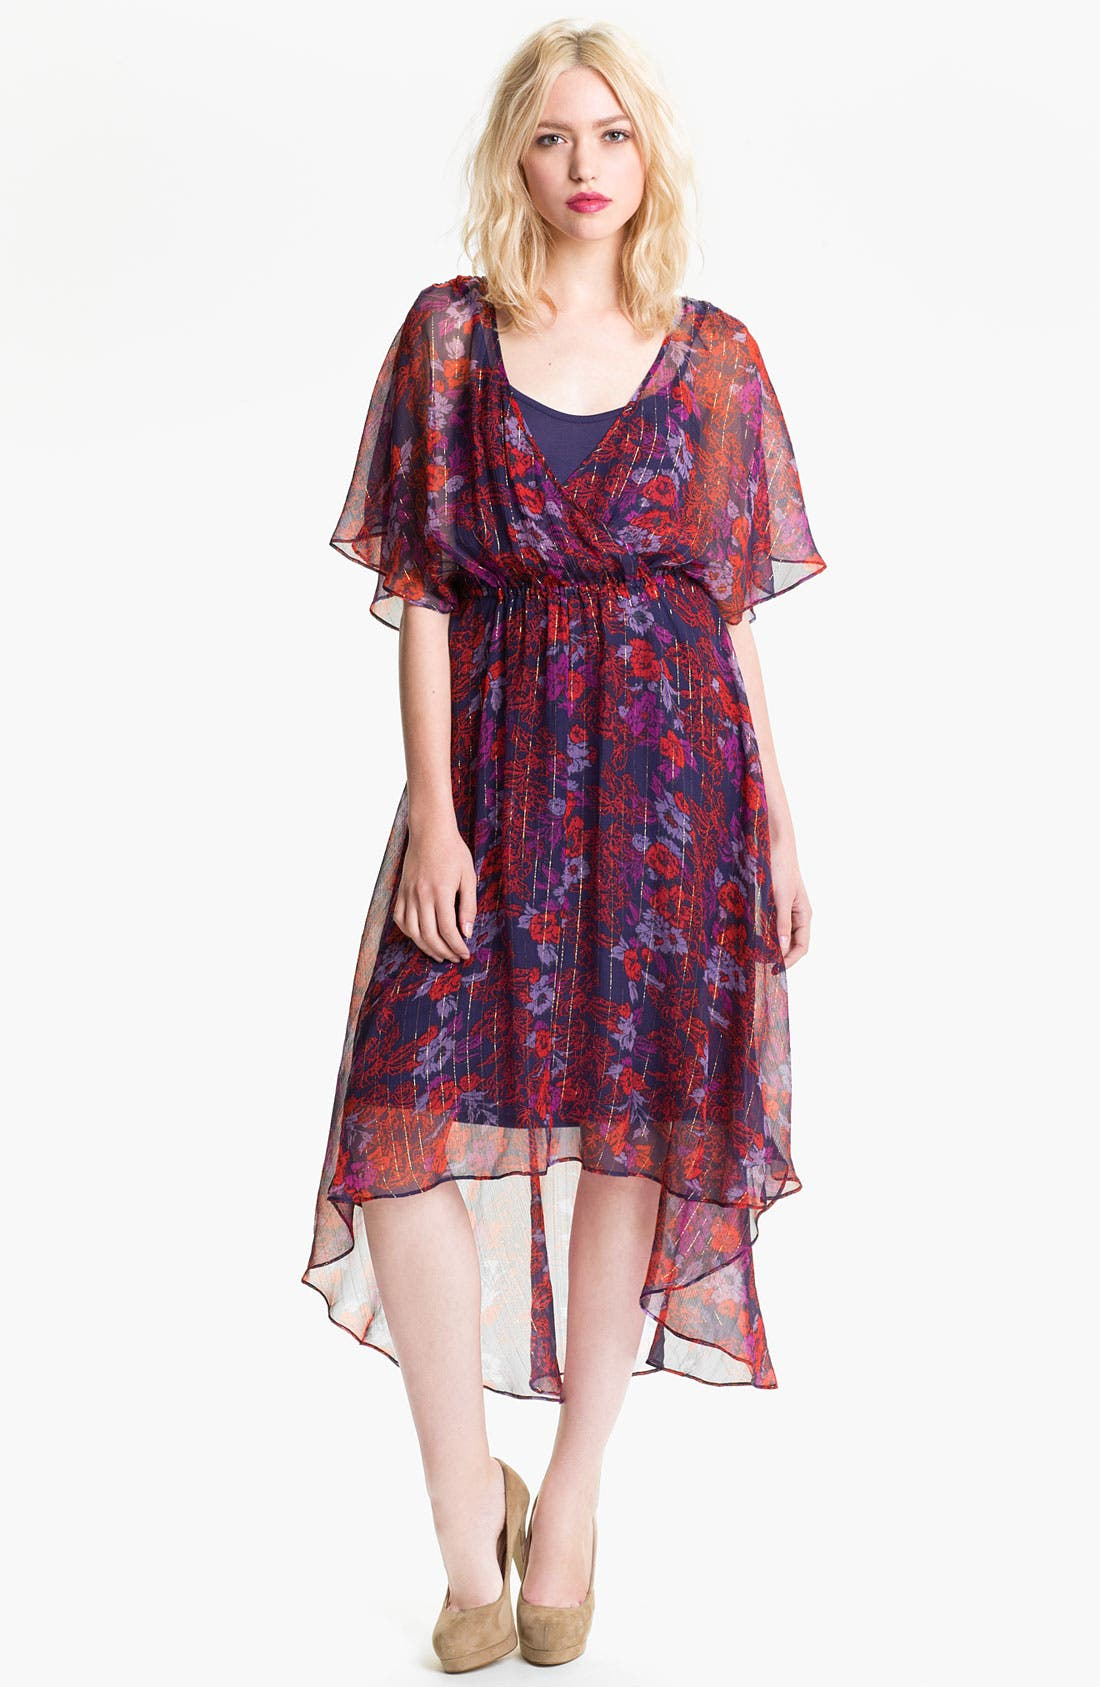 Alternate Image 1 Selected - Ella Moss 'Rosemary' High/Low Print Dress